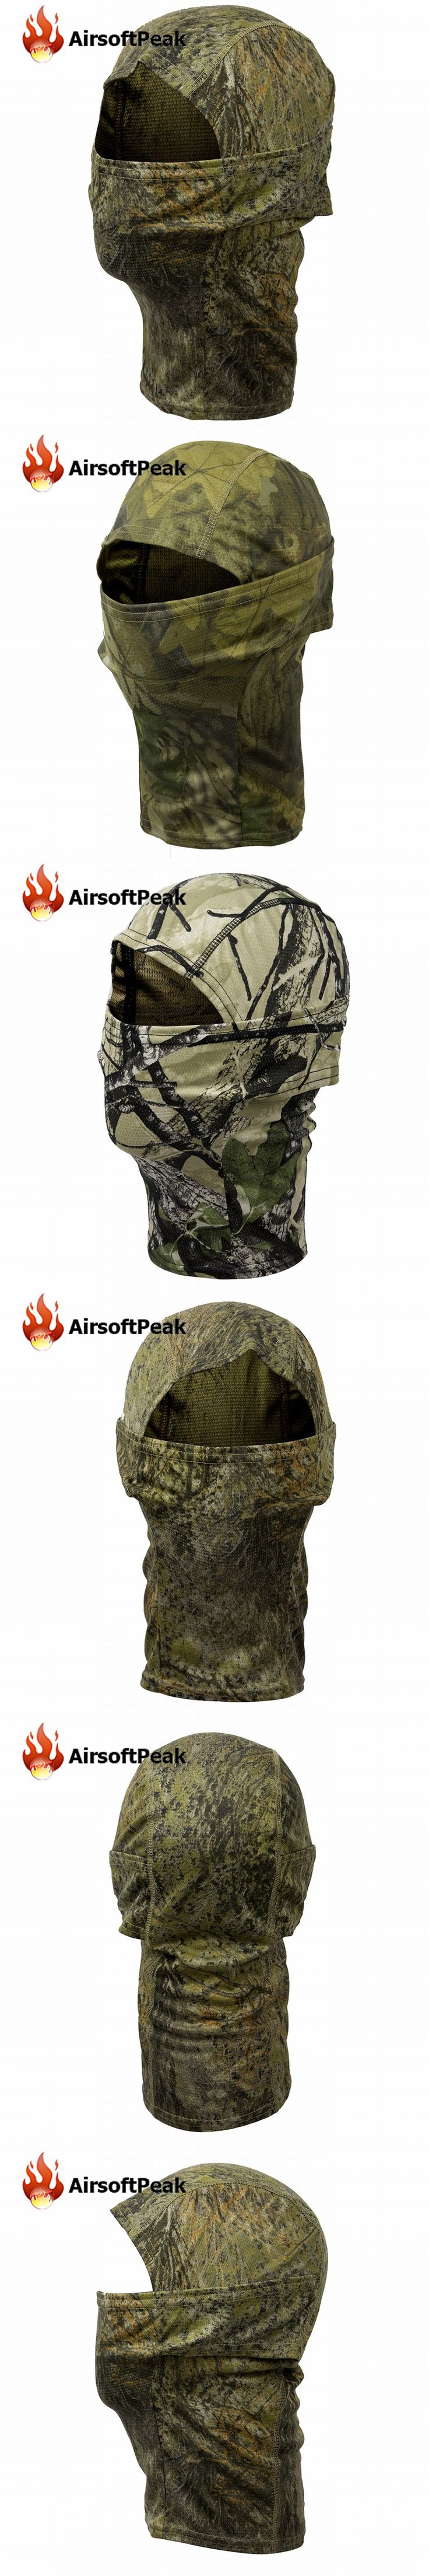 Bionic Camouflage Full Face Mask Quick-dry Fabric Hunting Cycling Hiking Outdoor Windproof Sunshade Scarf Hood Balaclava